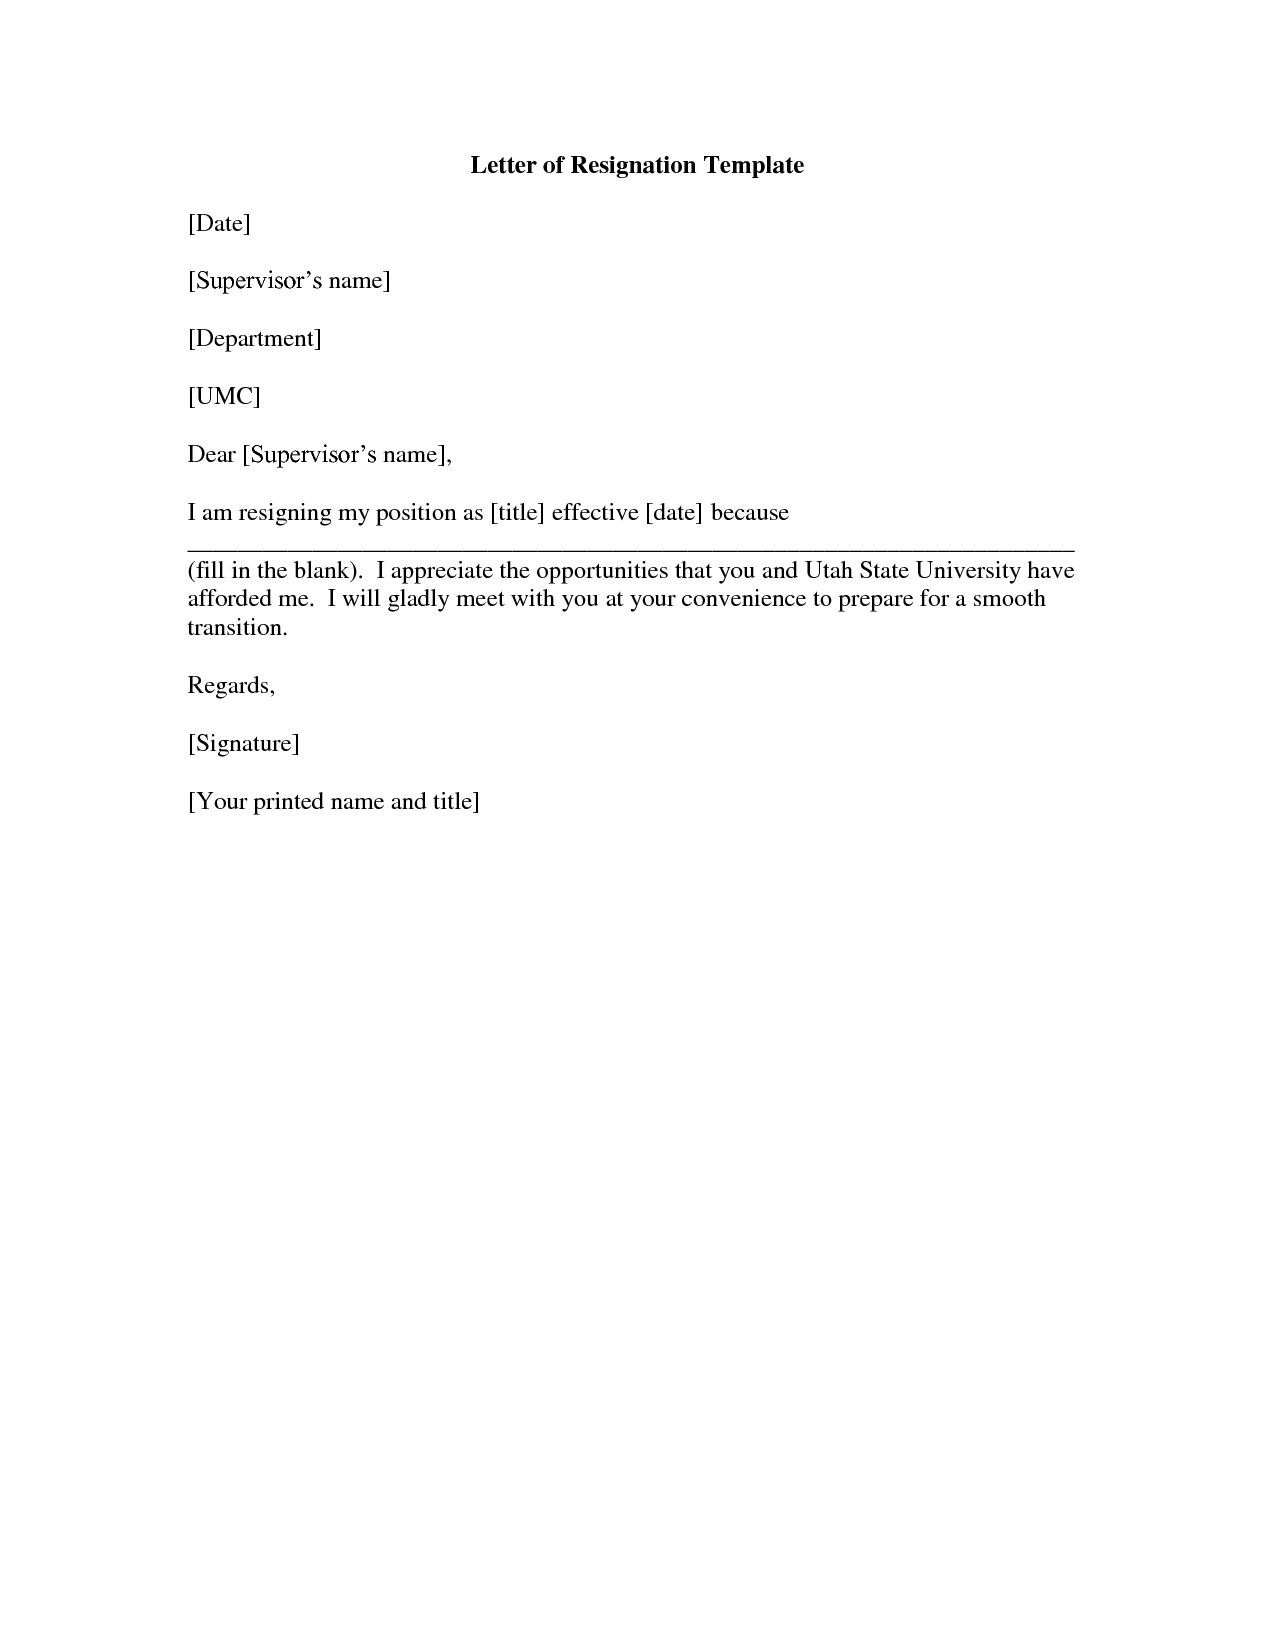 Example simple cover letter sample within resume resignation with example simple cover letter sample within resume resignation with regard amazing letters altavistaventures Gallery